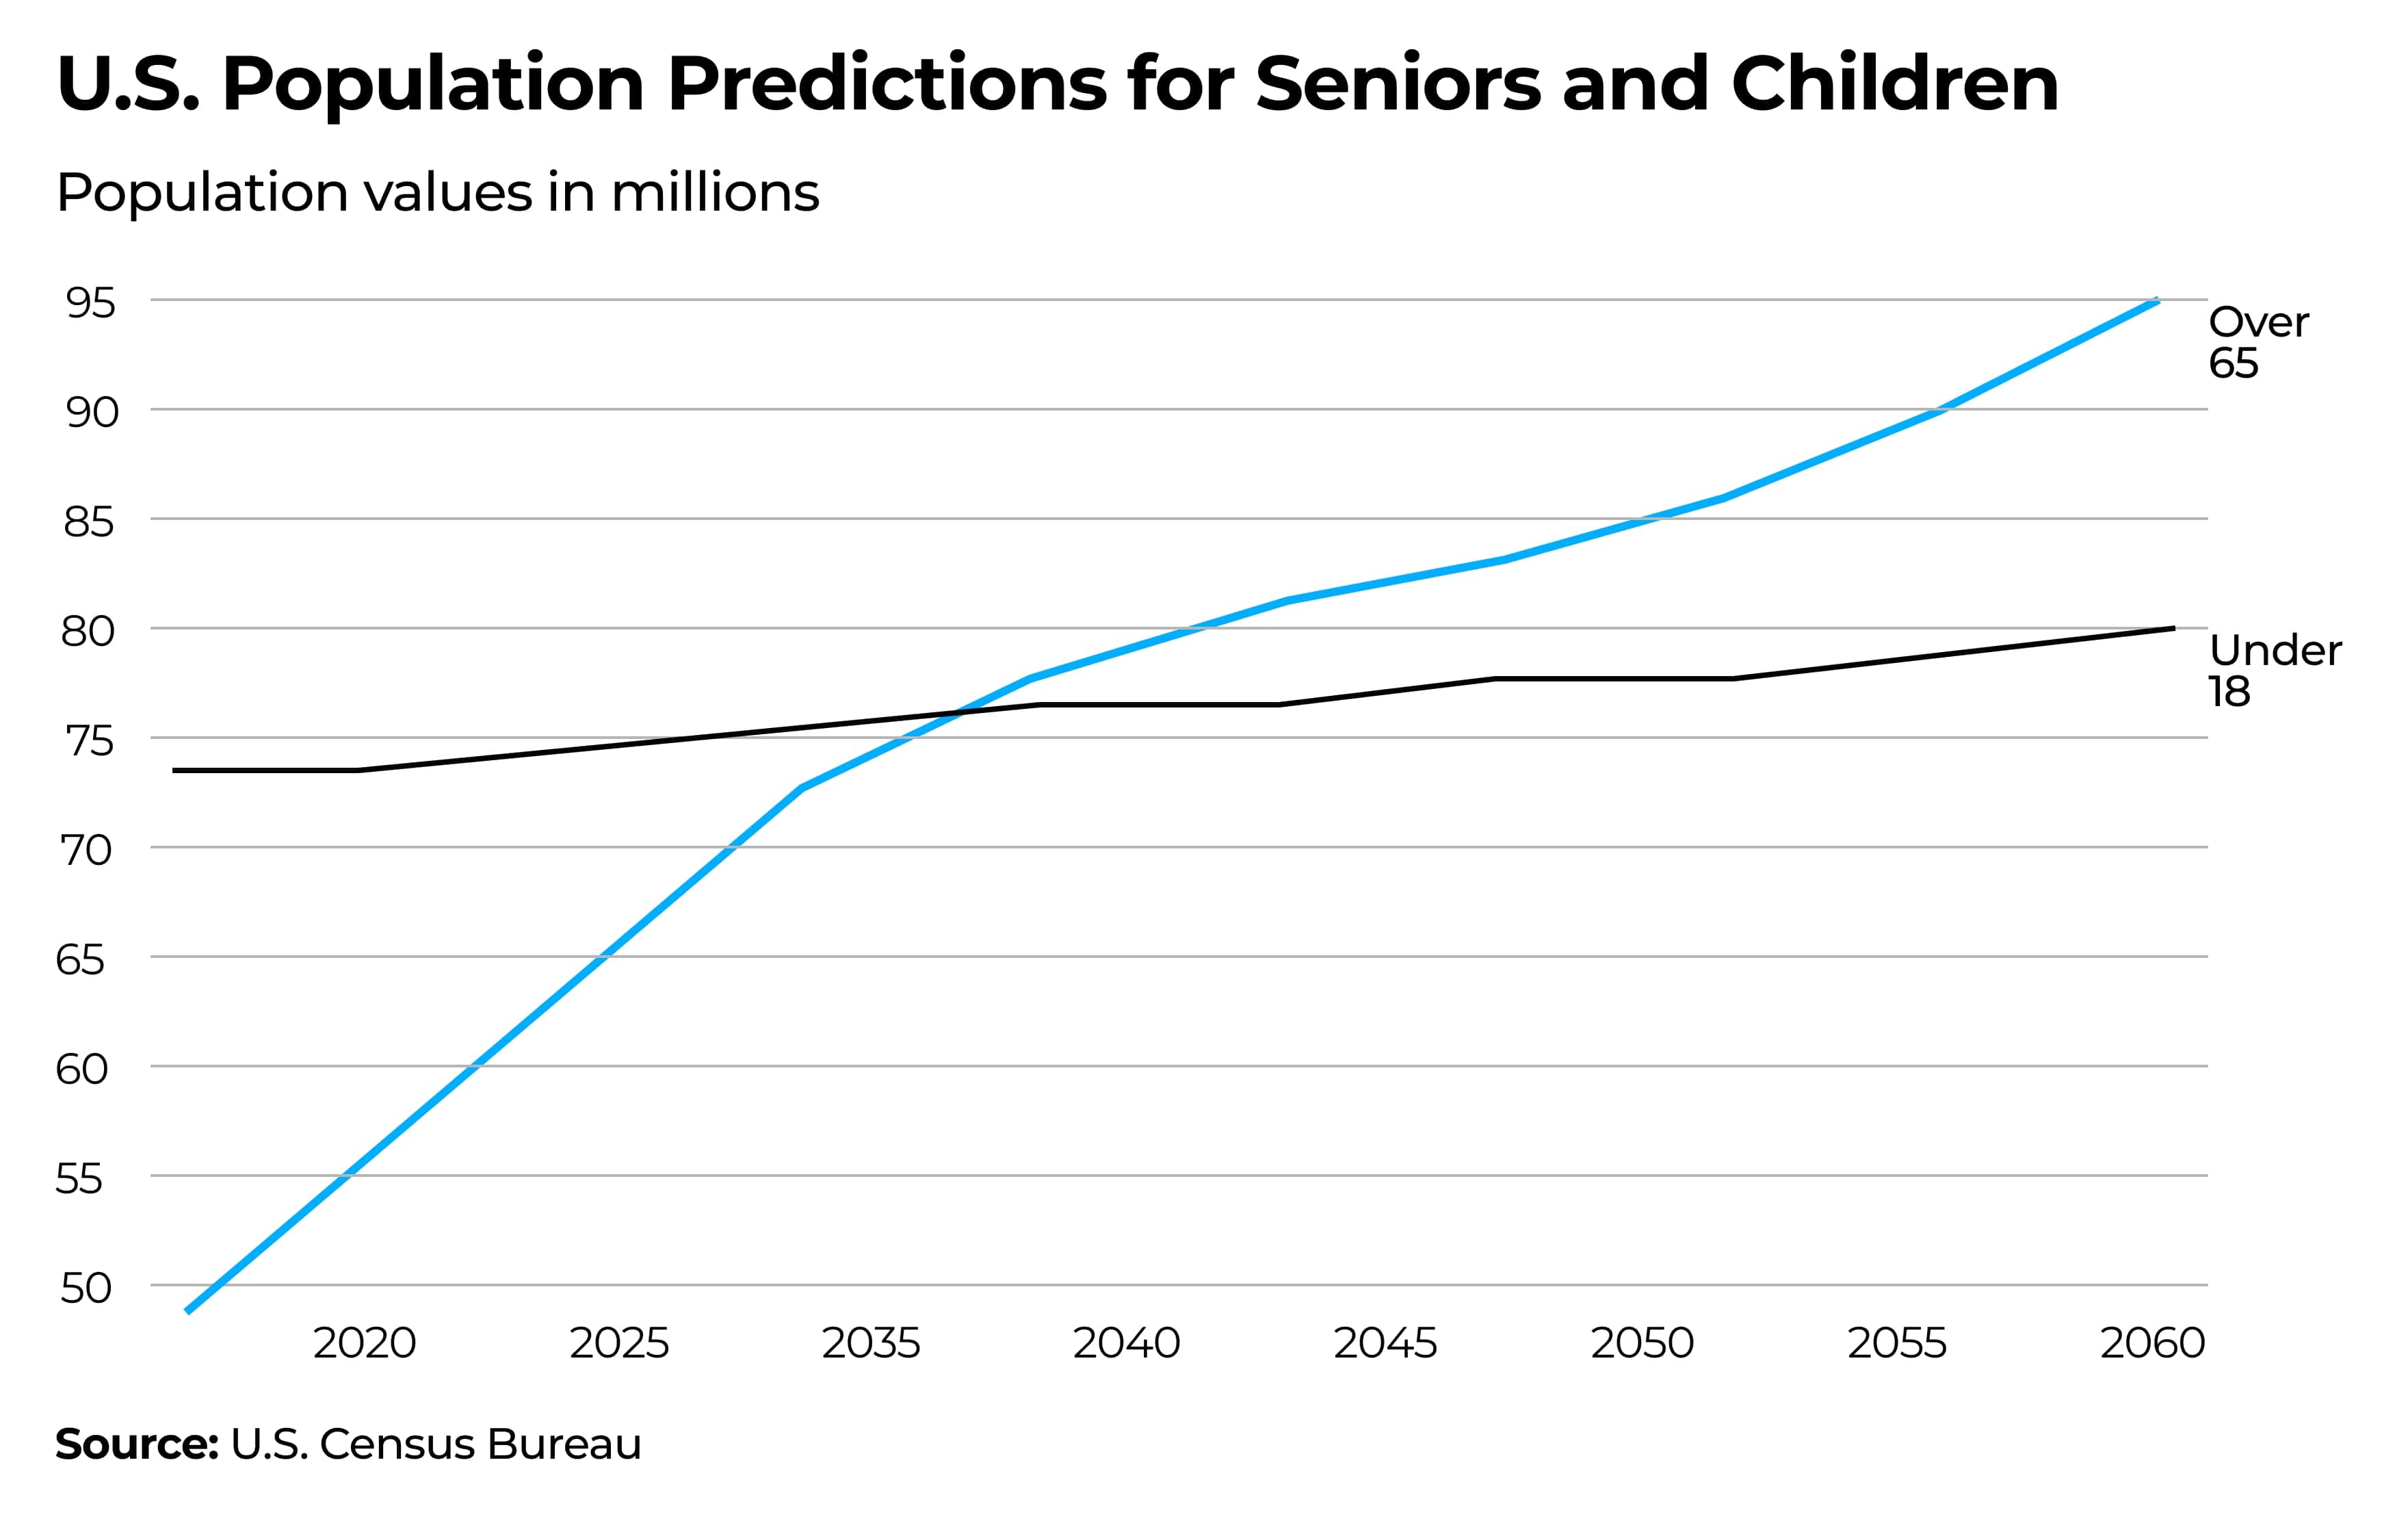 The Census Bureau predicts that seniors will outnumber children under 14 by 2035.